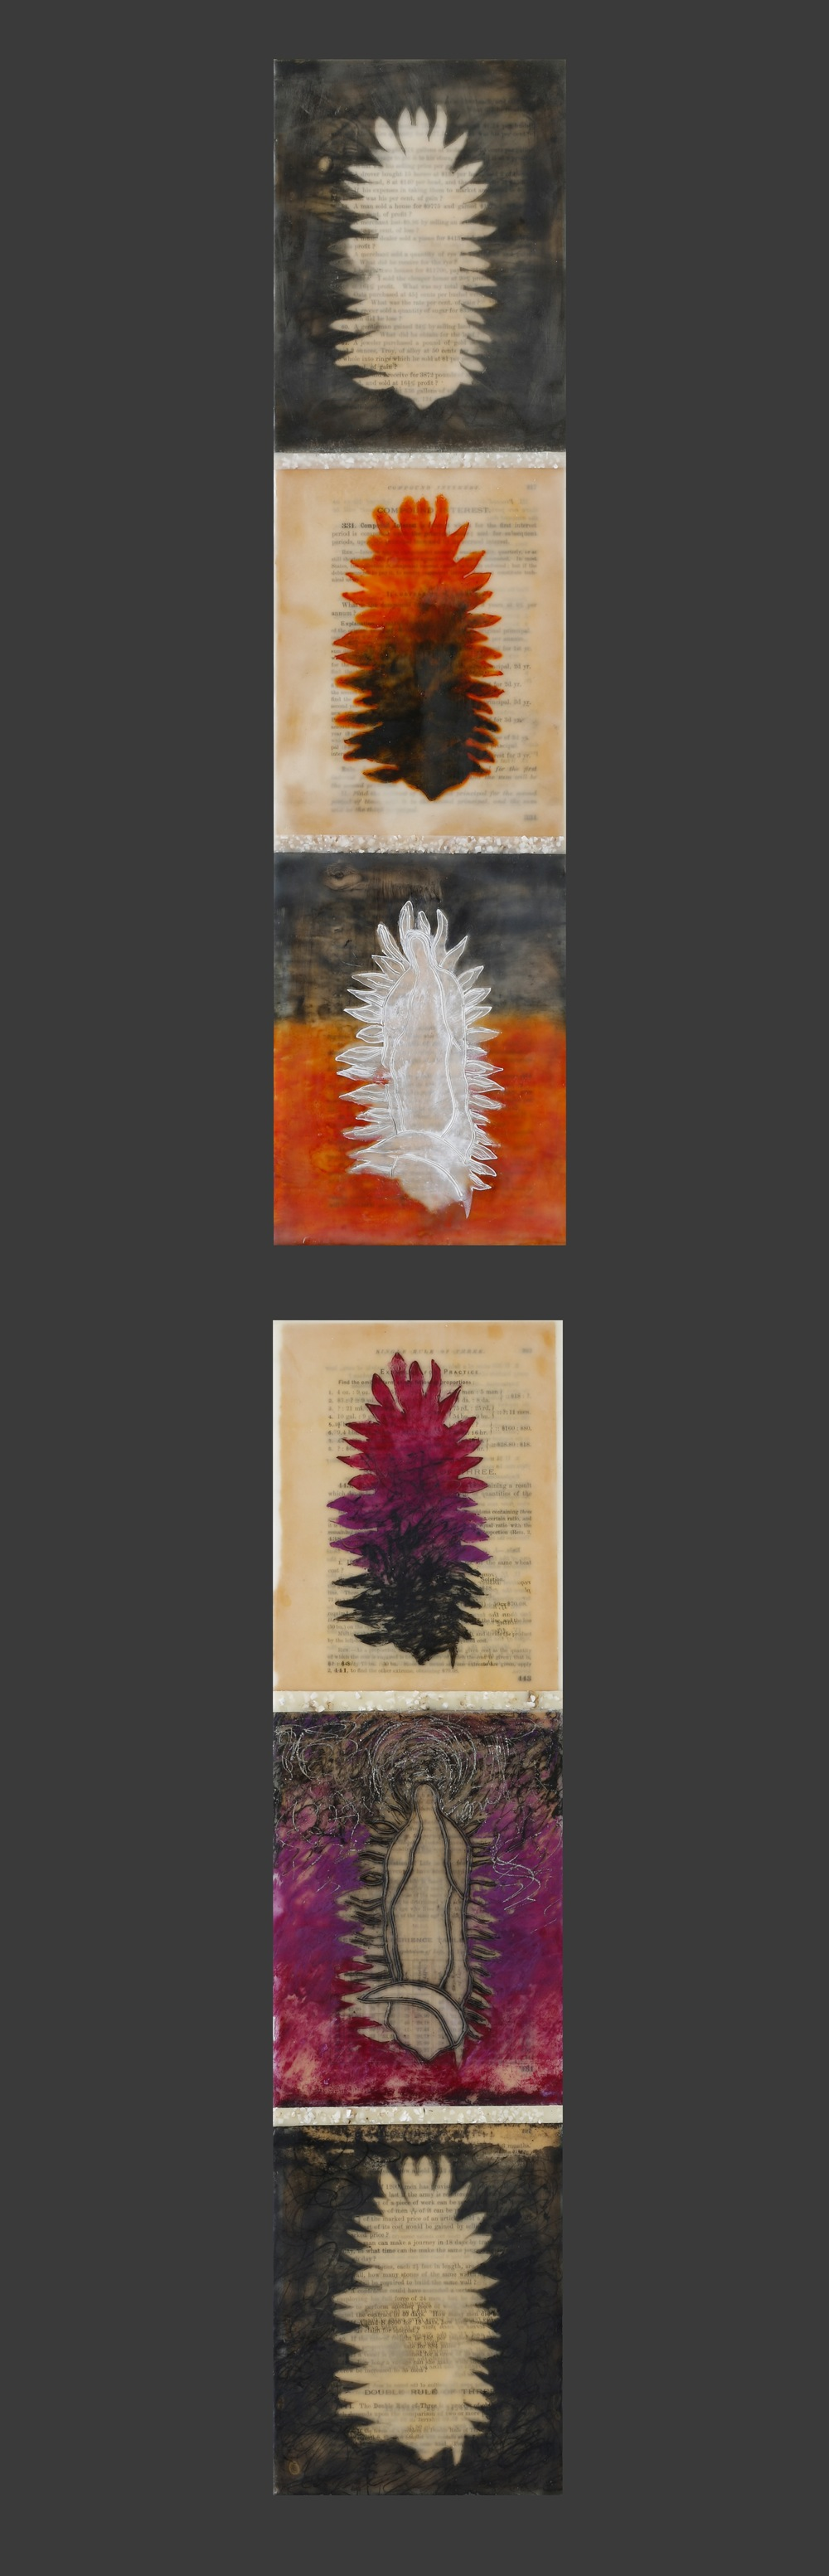 Totem 1 & 2 encaustic, mixed media & egg shells, 6x50""